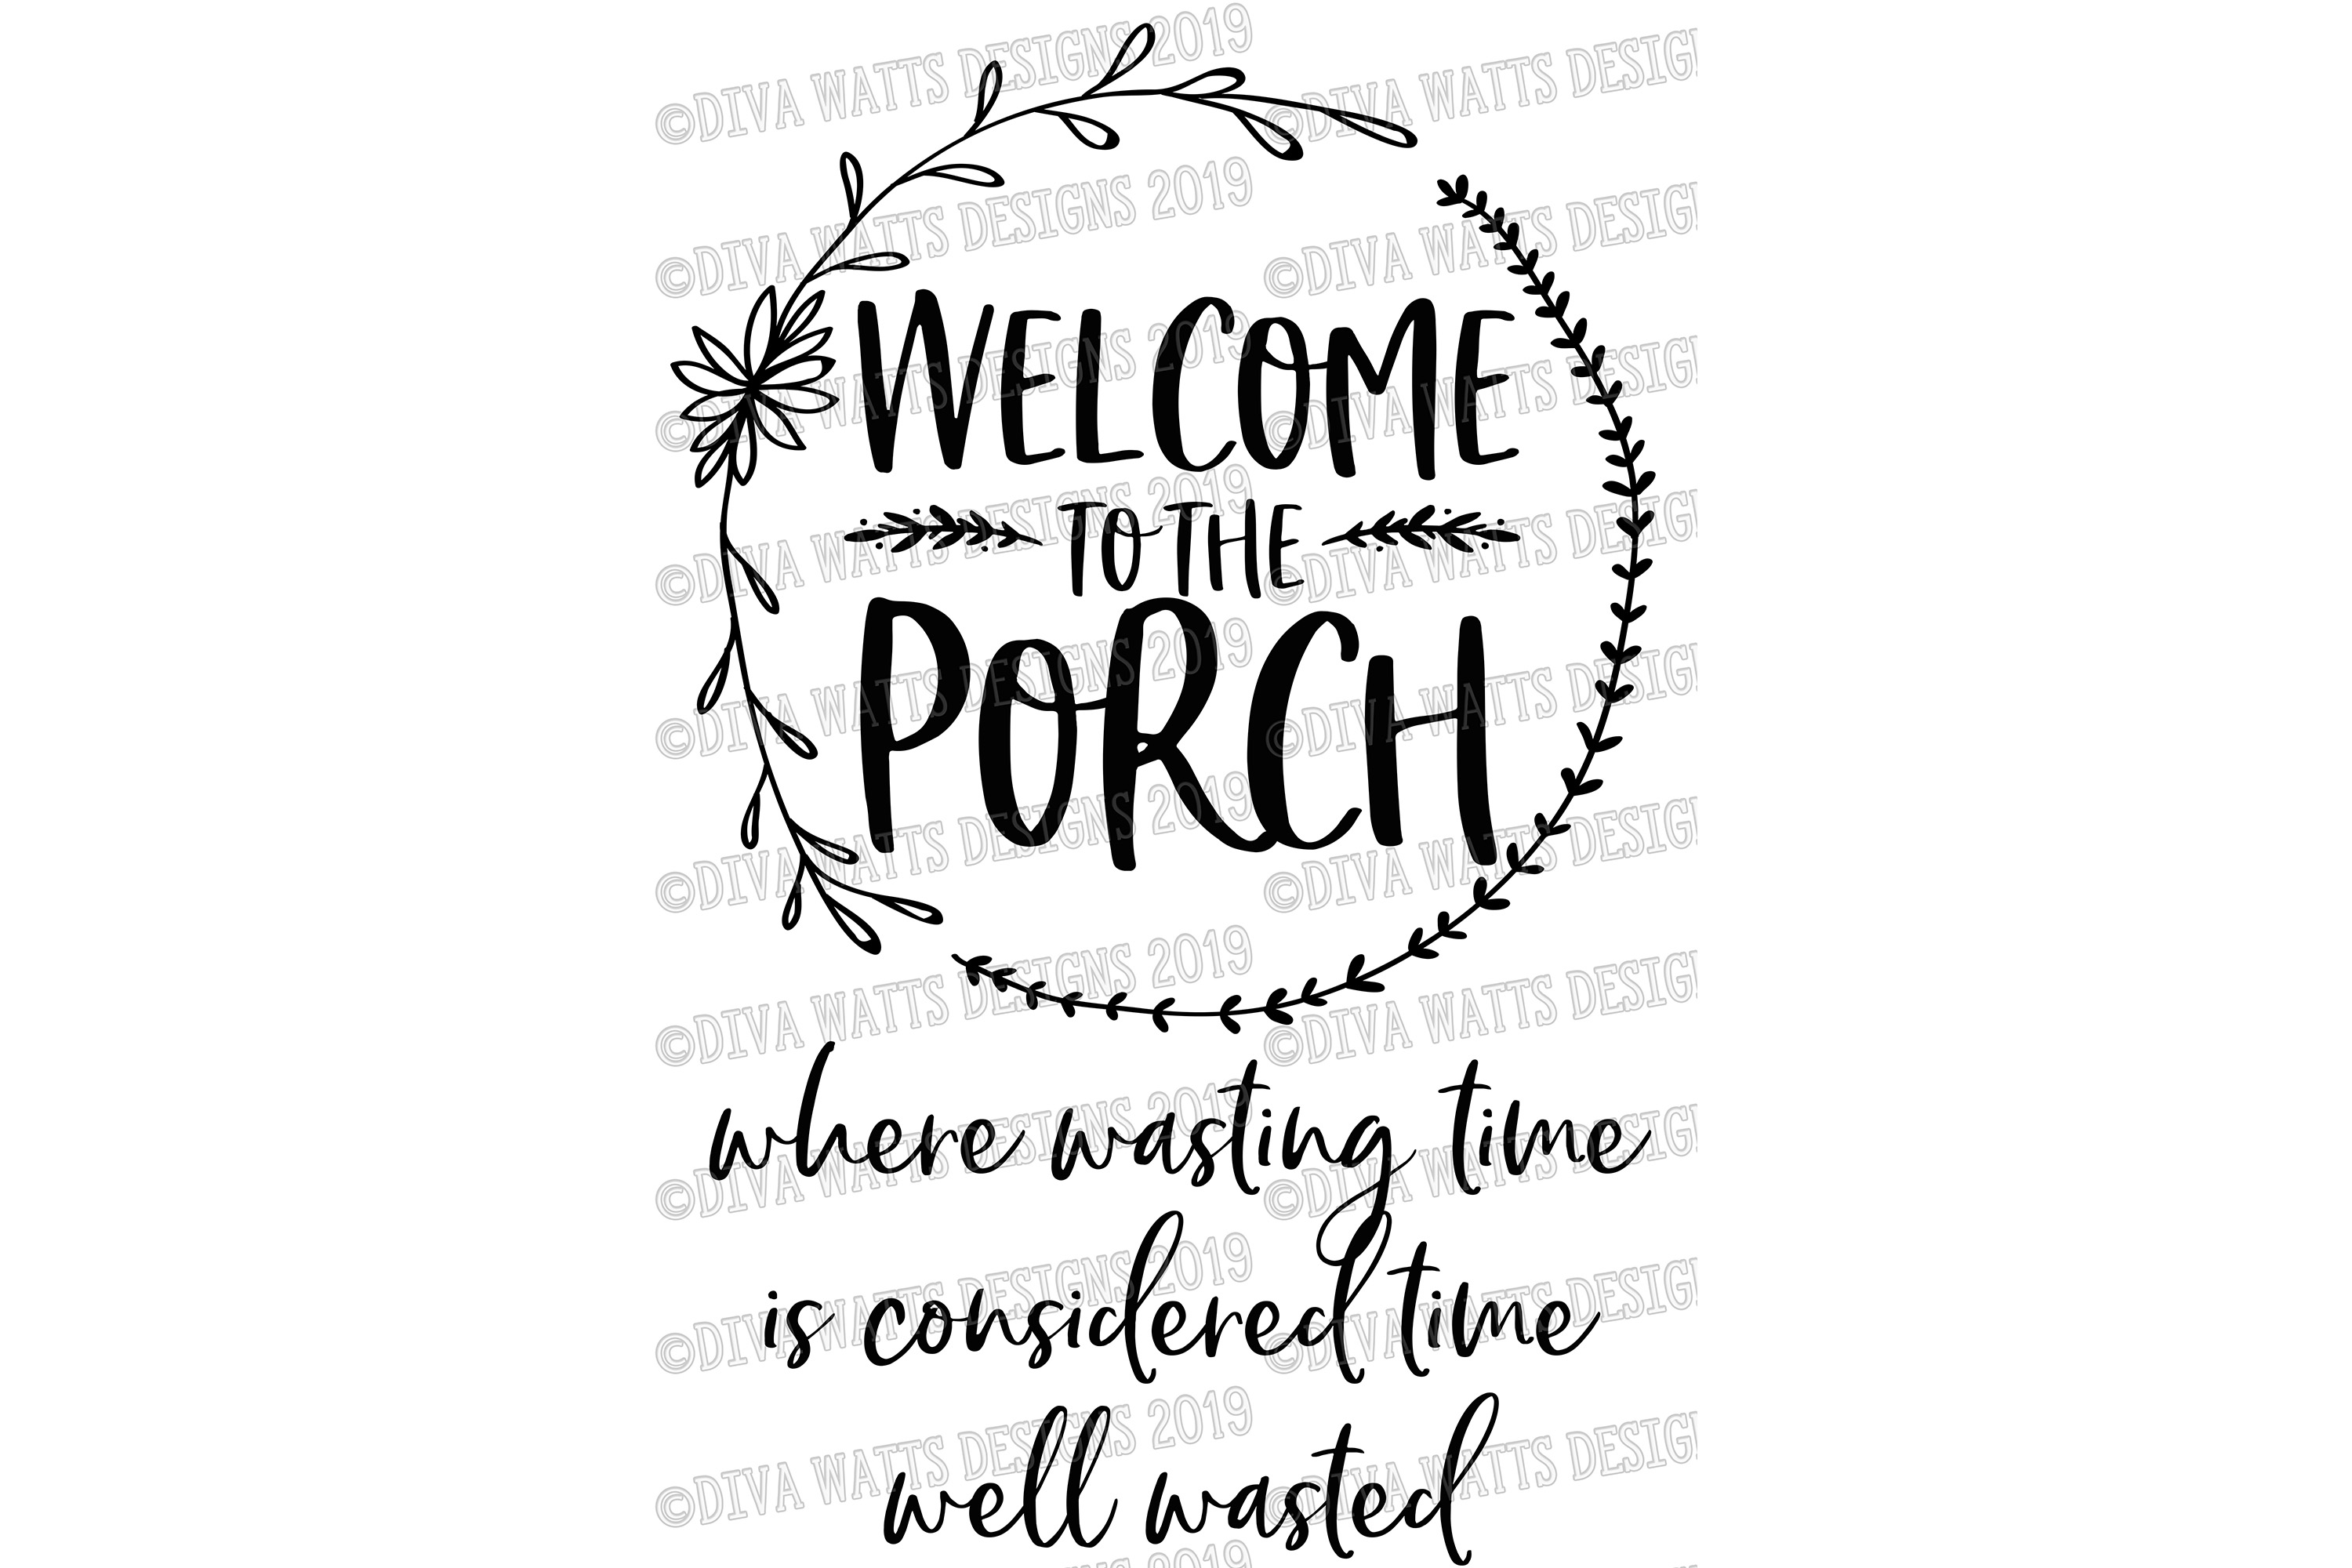 Welcome To The Porch Where Wasting Time Is Well Wasted example image 2